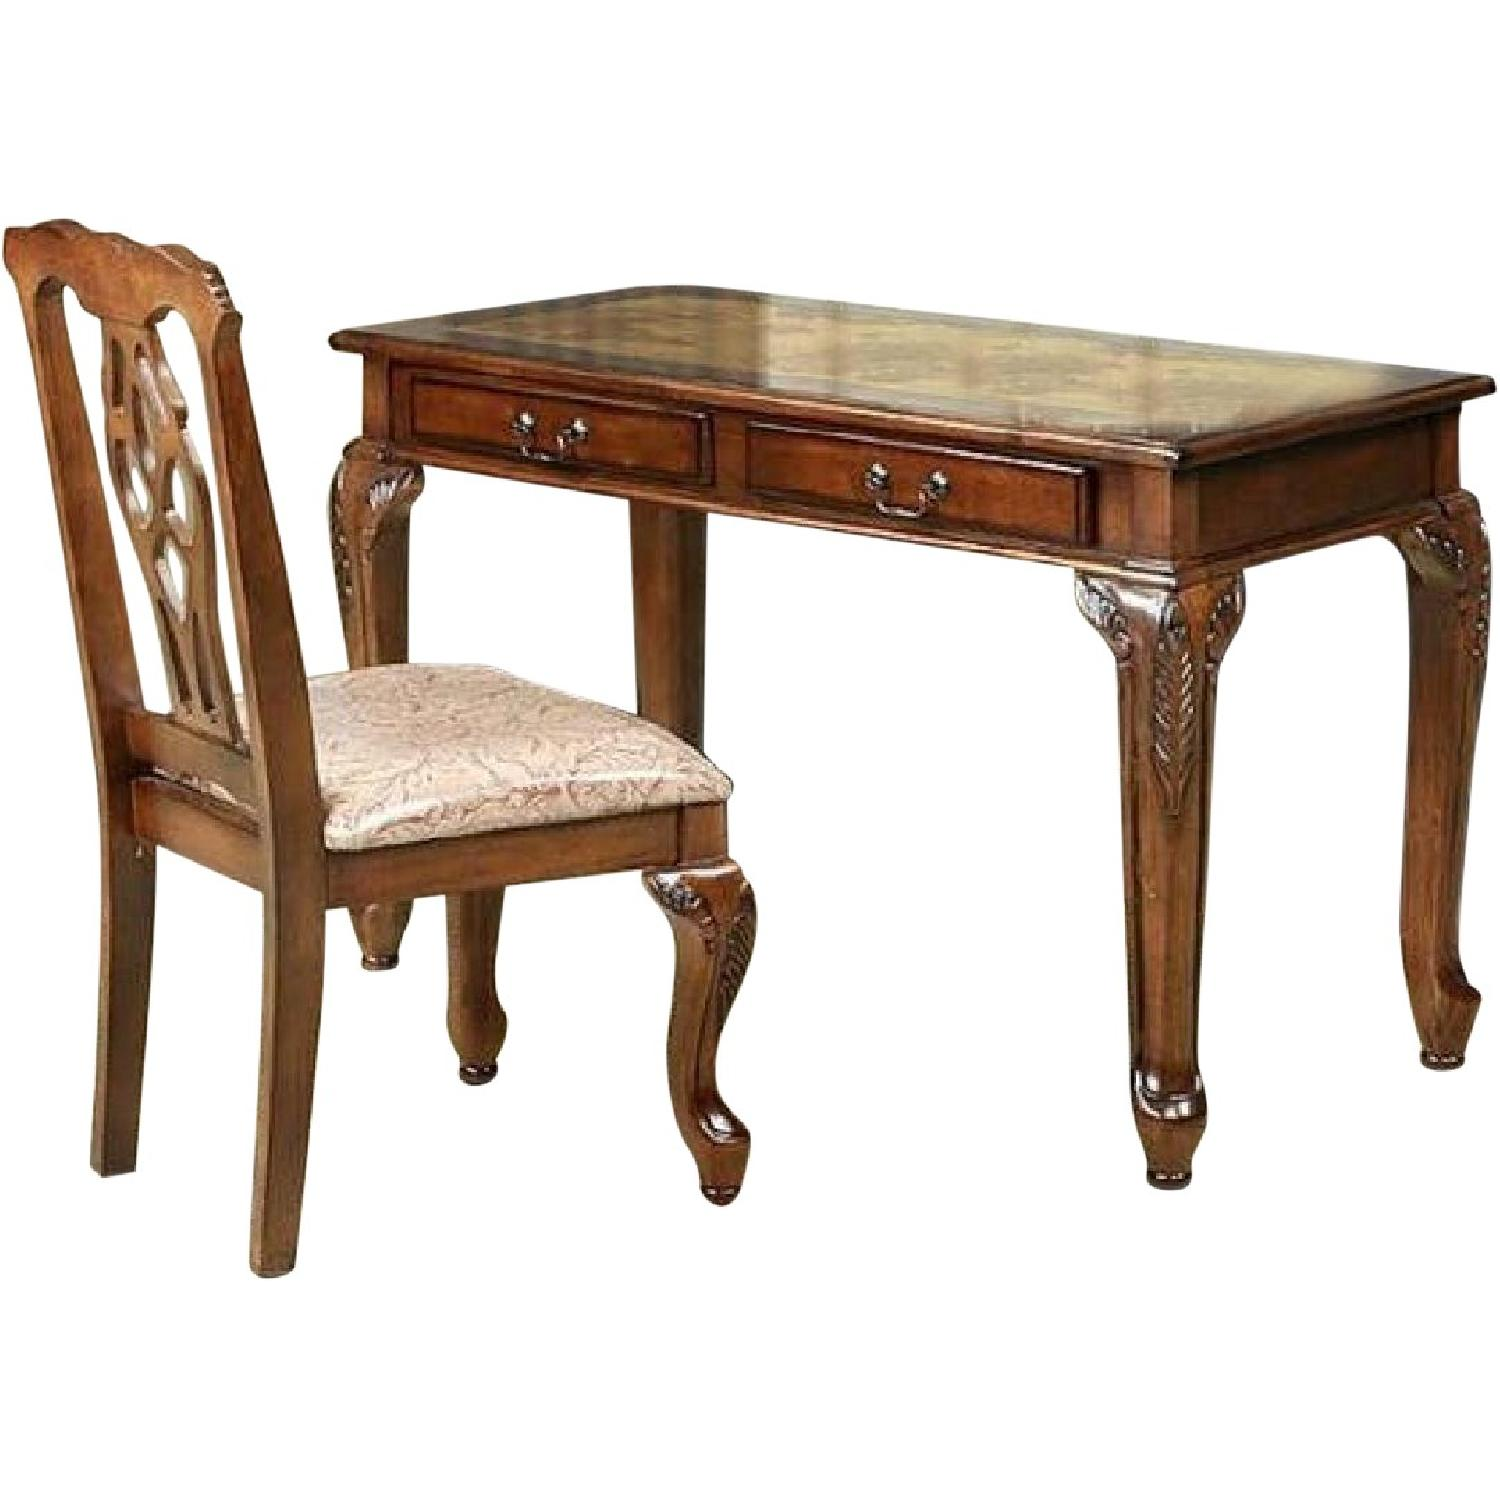 Writing Desk & Chair in Golden Brown Finish